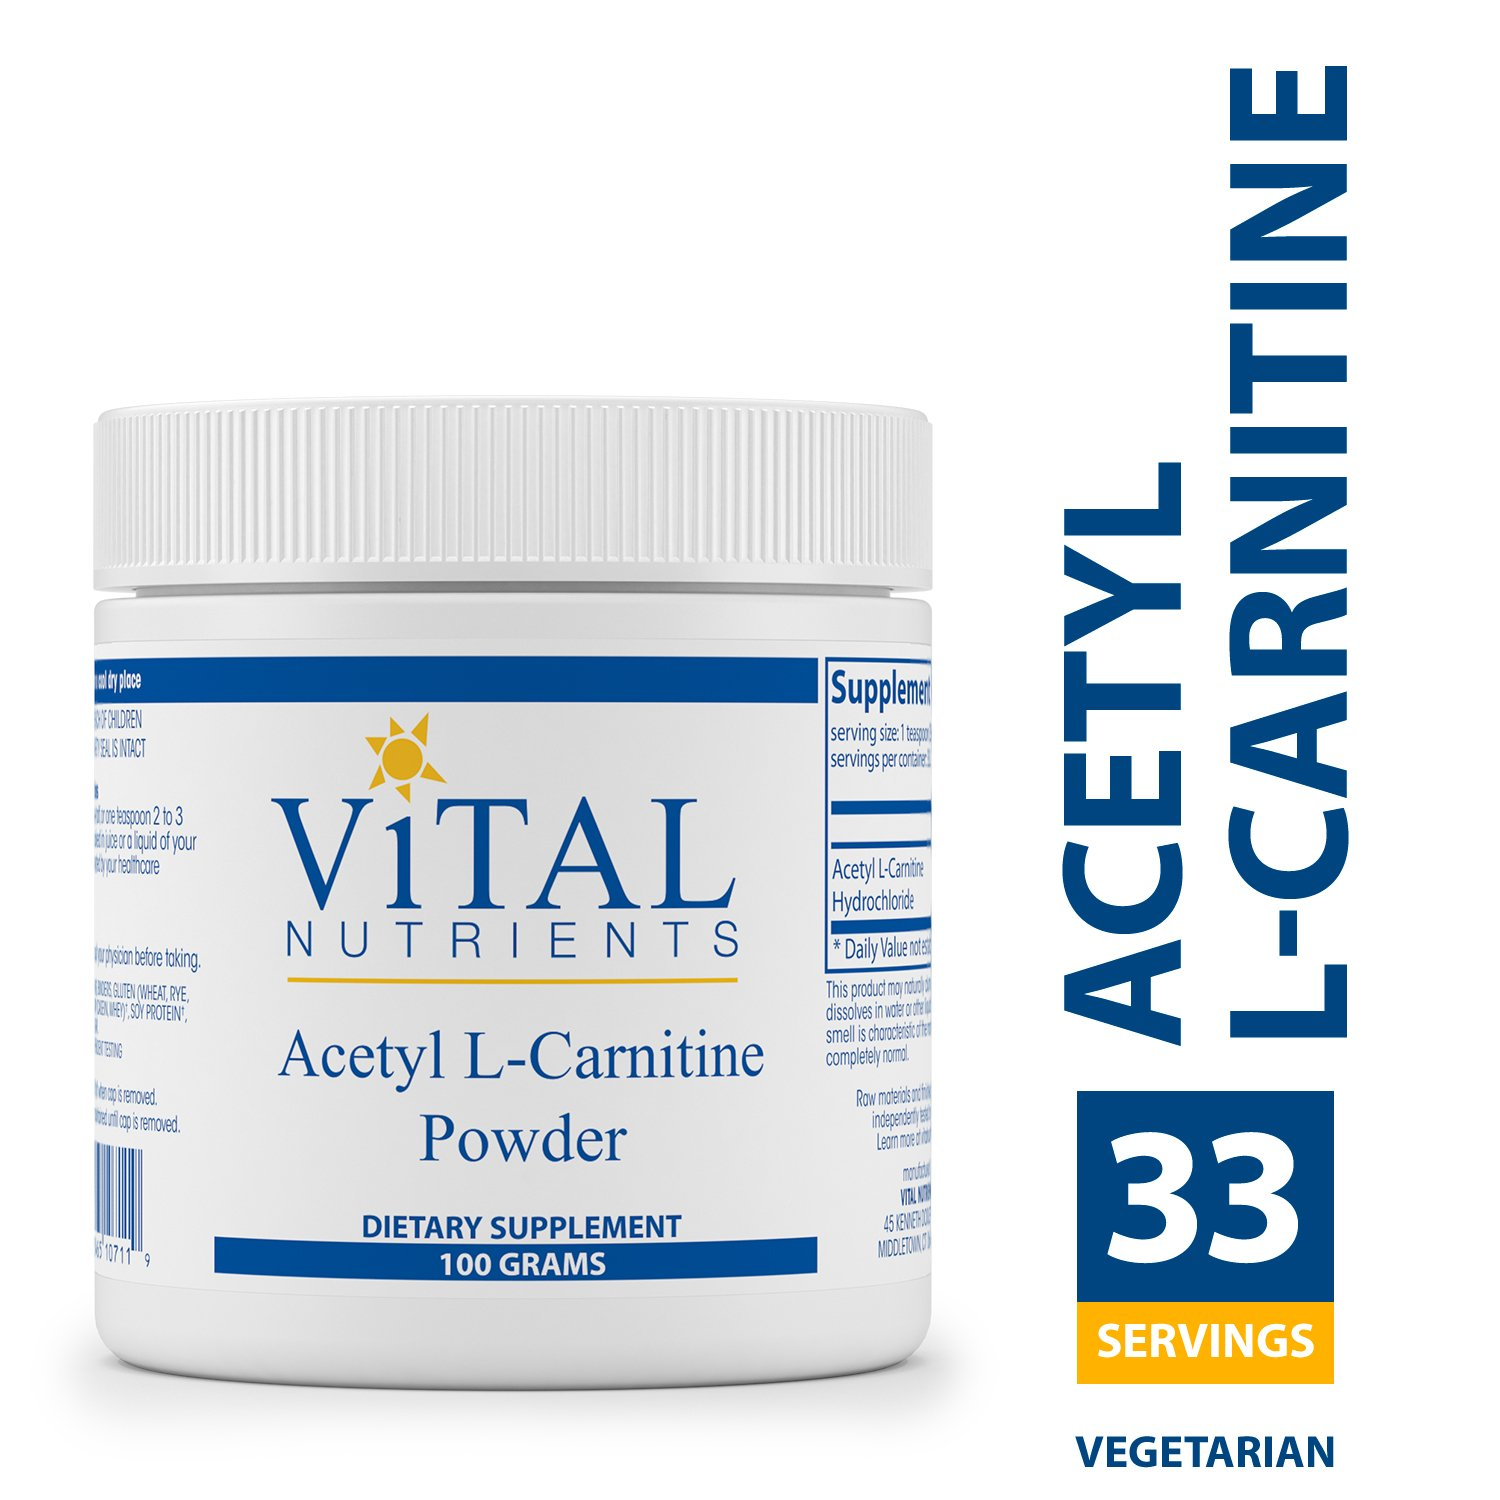 Vital Nutrients - Acetyl L-Carnitine Powder - Supports Normal Brain Function and Memory - 3000 mg per Serving - Vegetarian - 100 Grams